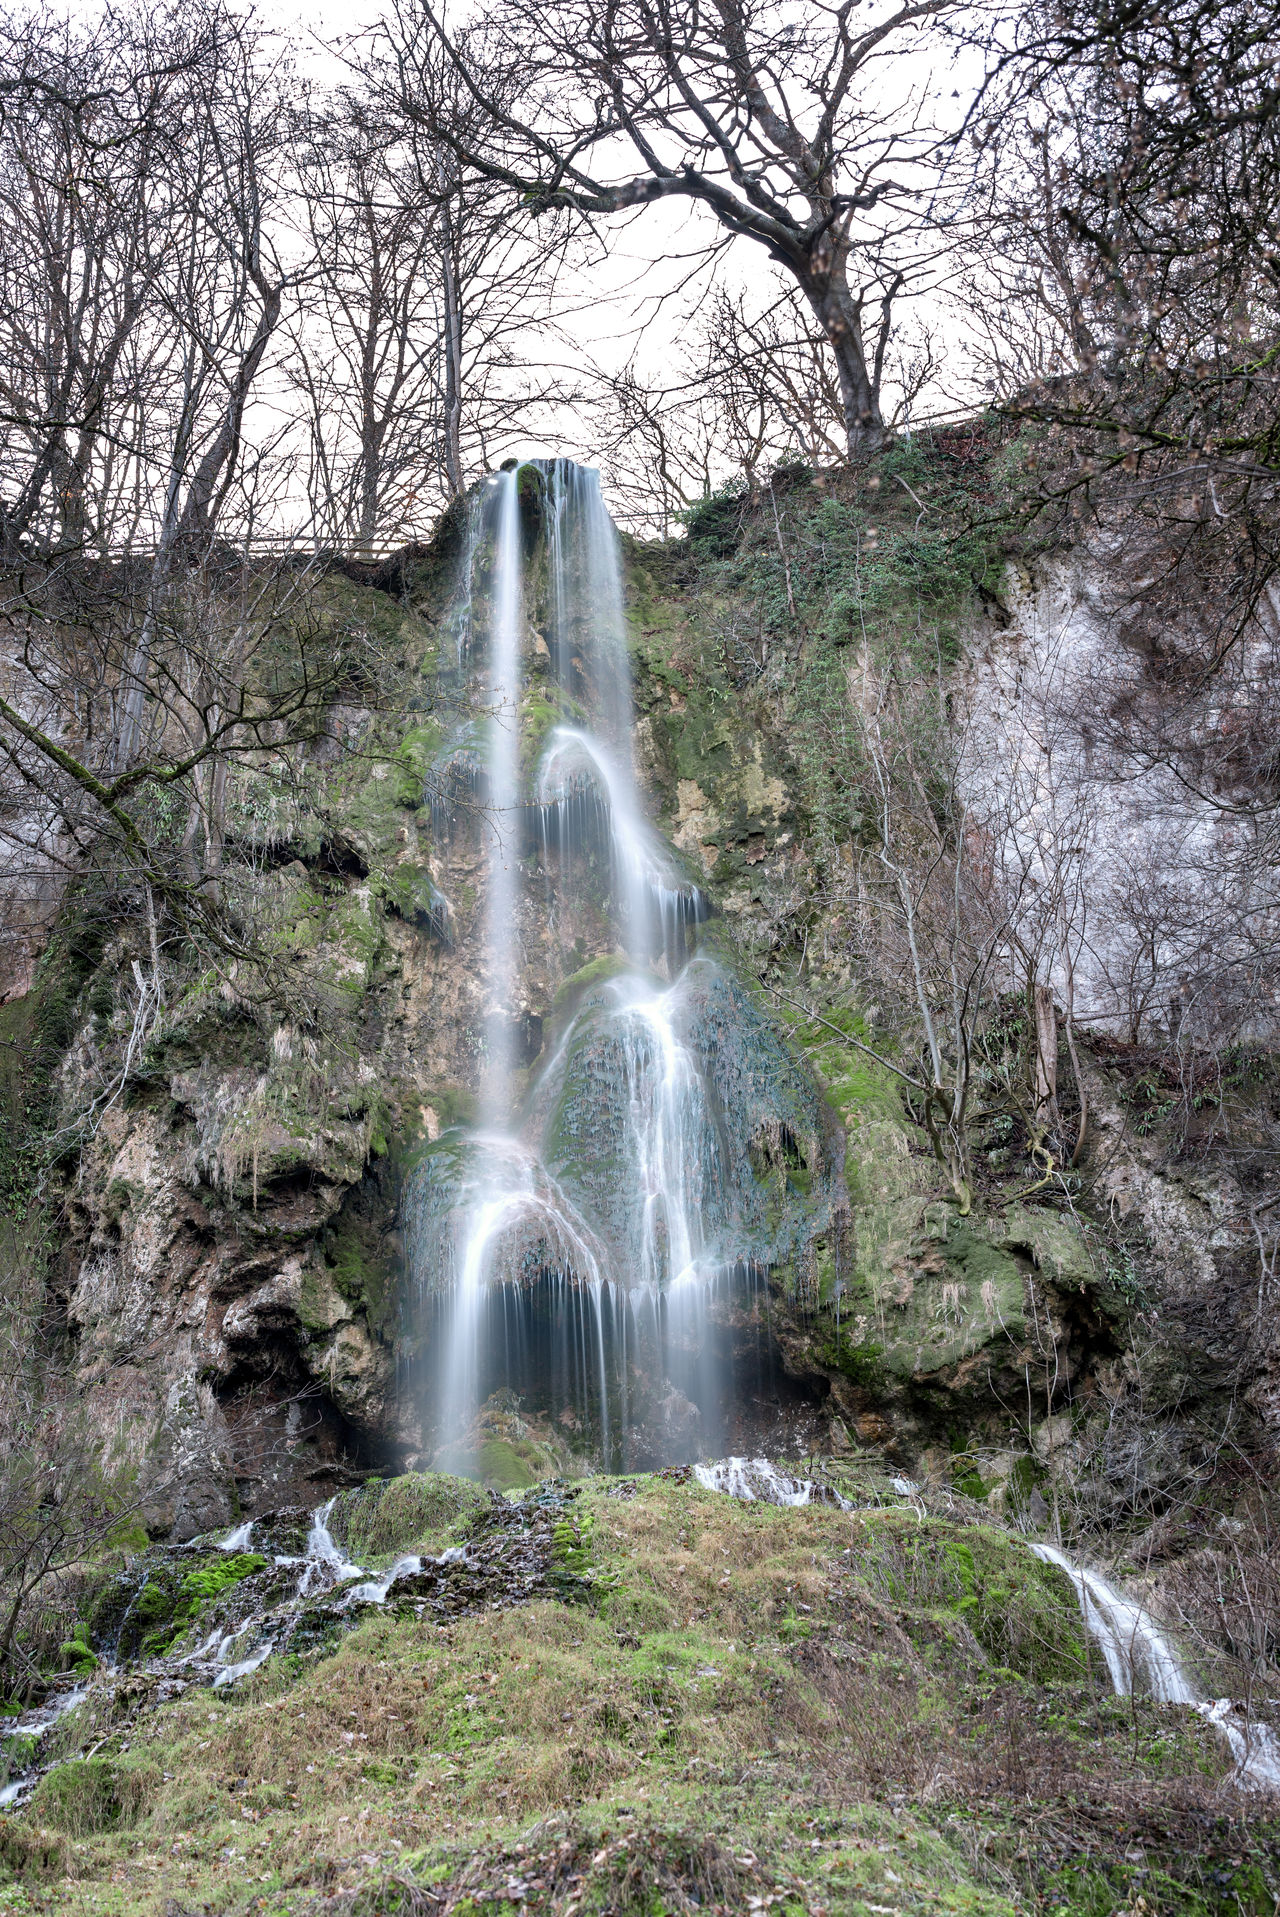 Waterfalls Bad Urach, germany Bad Urach Bad Urach Waterfall Beauty In Nature Day Deutschland Deutschland Ist Schön Freshness Germany Germany Nature Langzeitbelichtung Long Exposure Motion Nature No People Outdoors Power In Nature Wasserfall Water Waterfall Winter